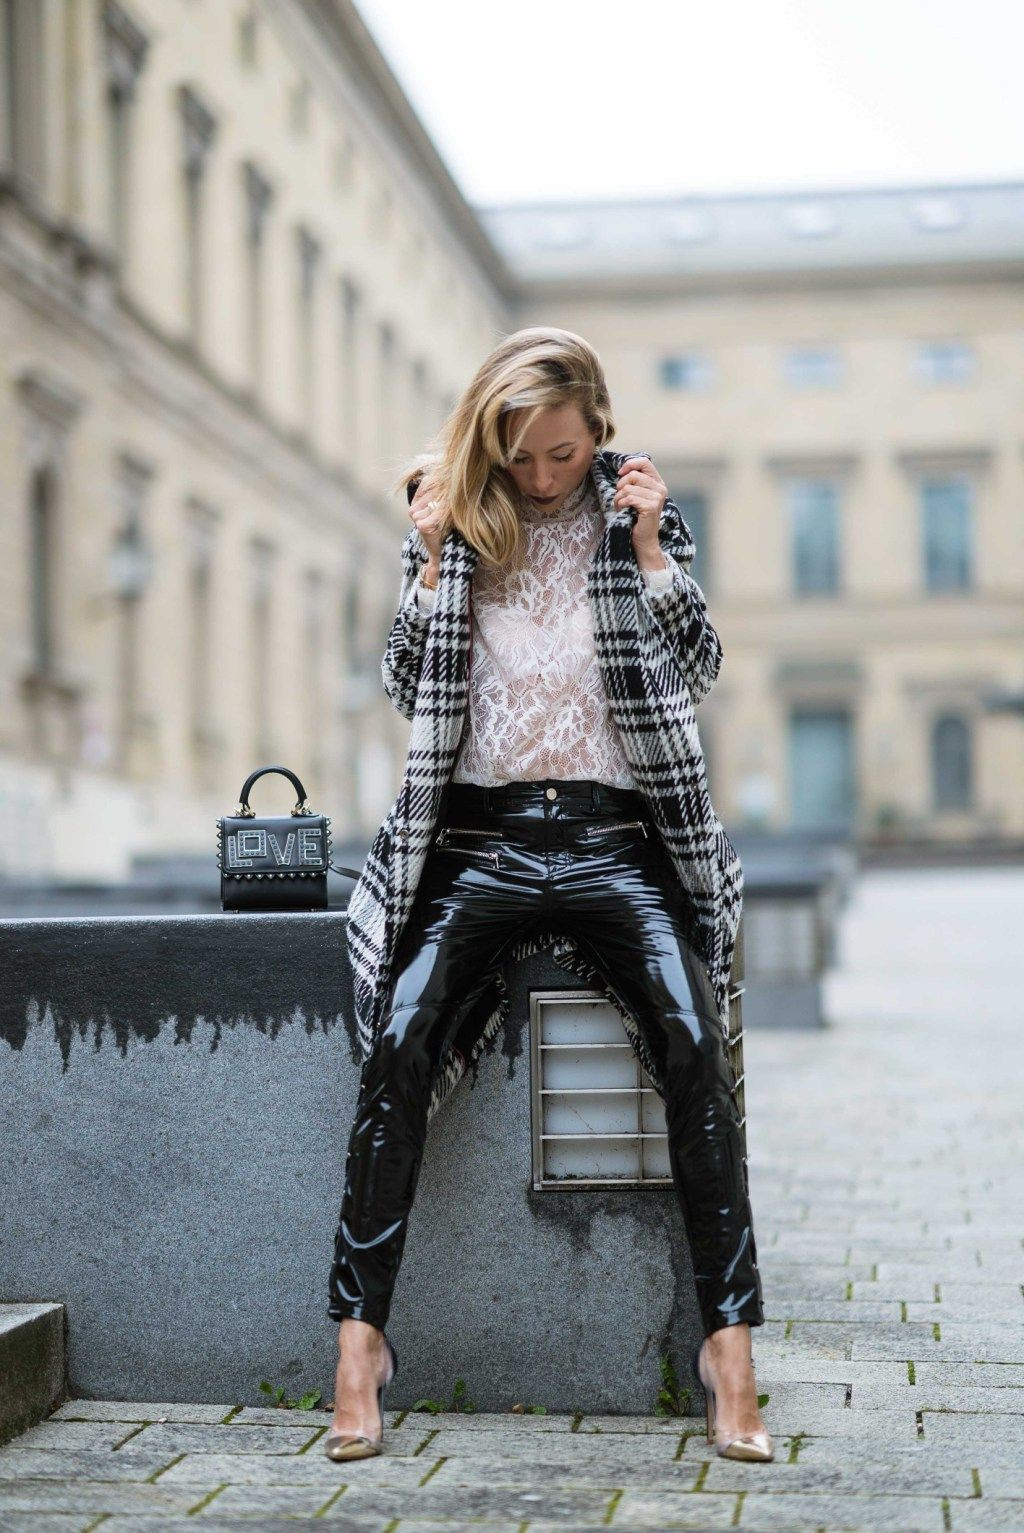 Black and white colour ideas with leather skirt, trousers, leggings